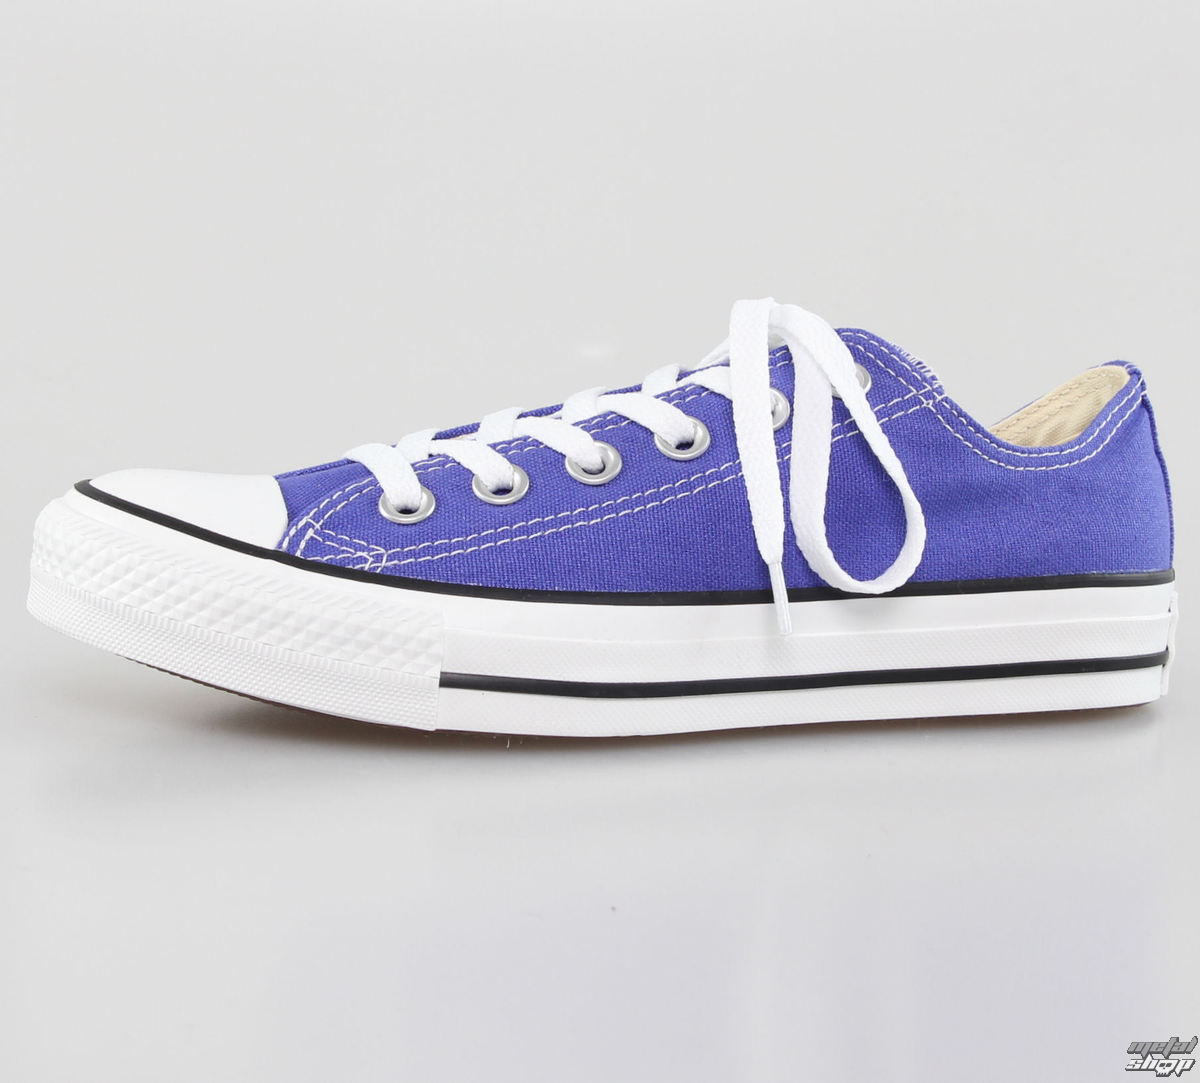 boty CONVERSE - Chuck Taylor All Star - Perwinkle - C147140